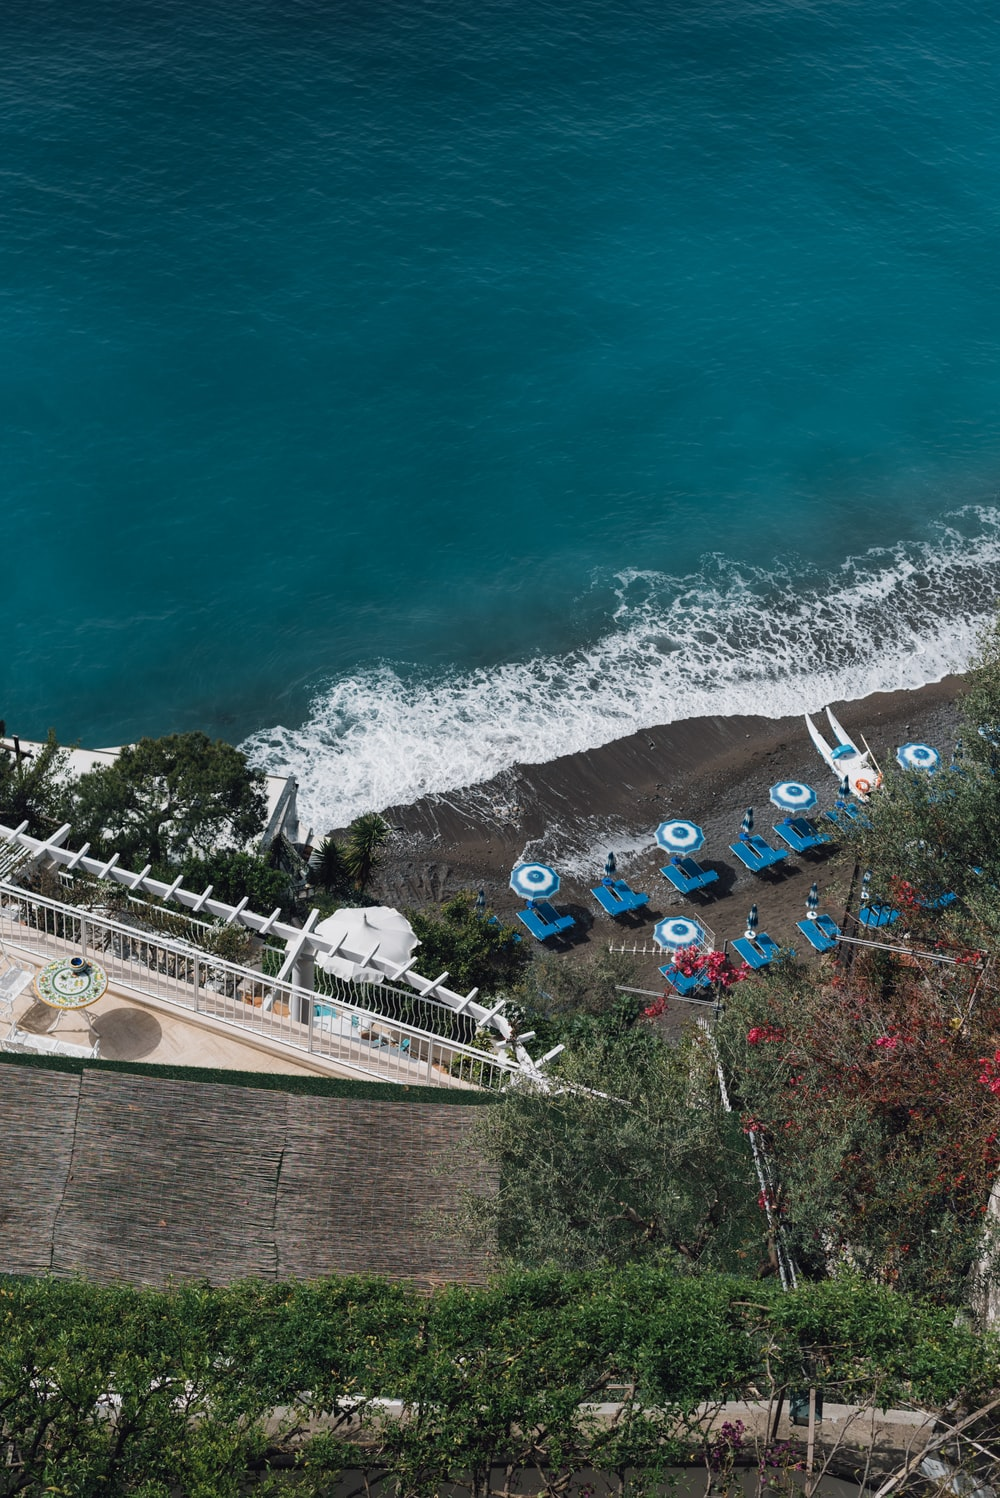 aerial photography of umbrellas and sunloungers by the beach